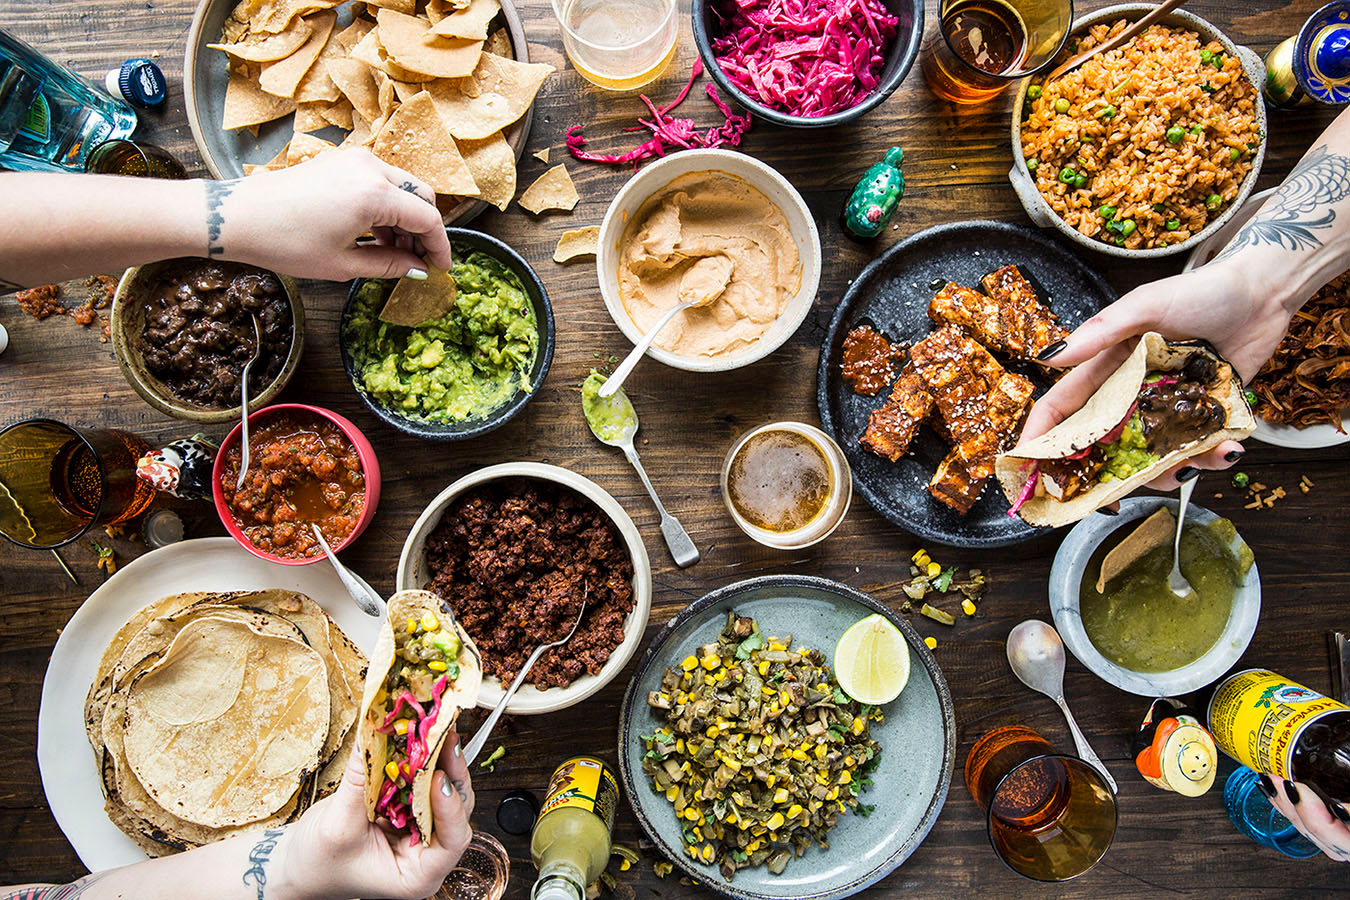 taco-party-vegan-food.jpg